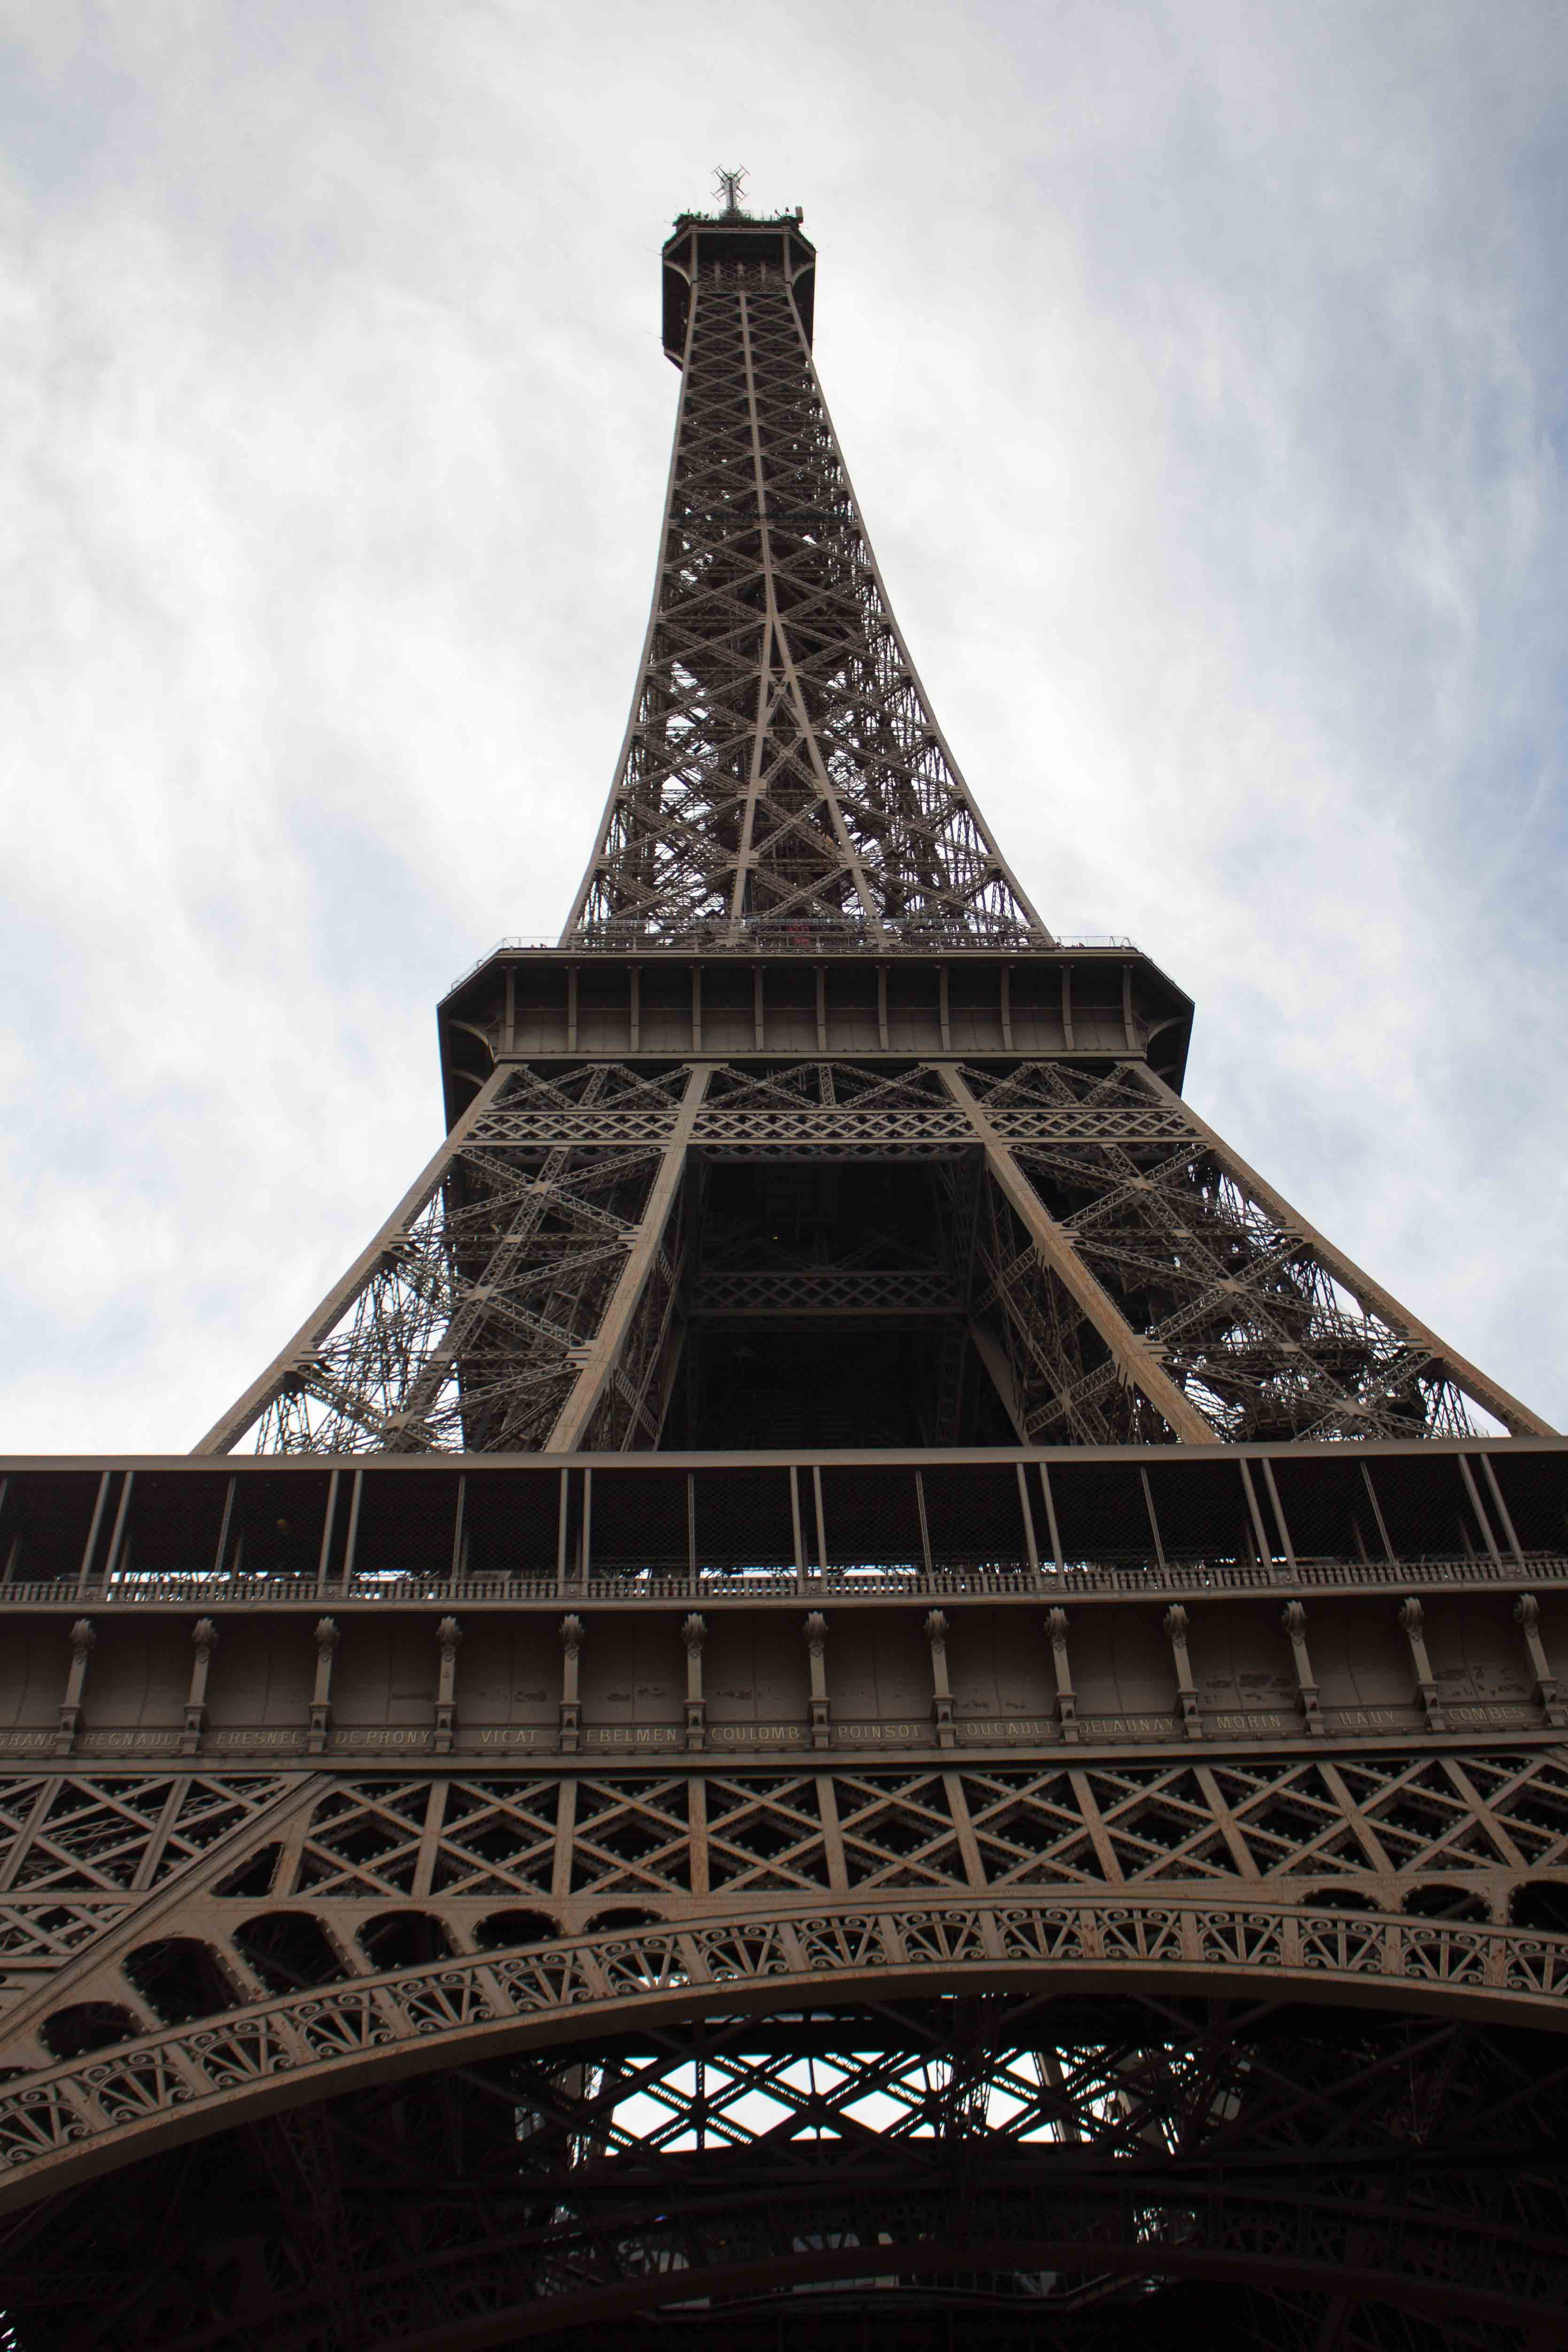 A visit to Paris is incomplete without climbing the Eiffel Tower!